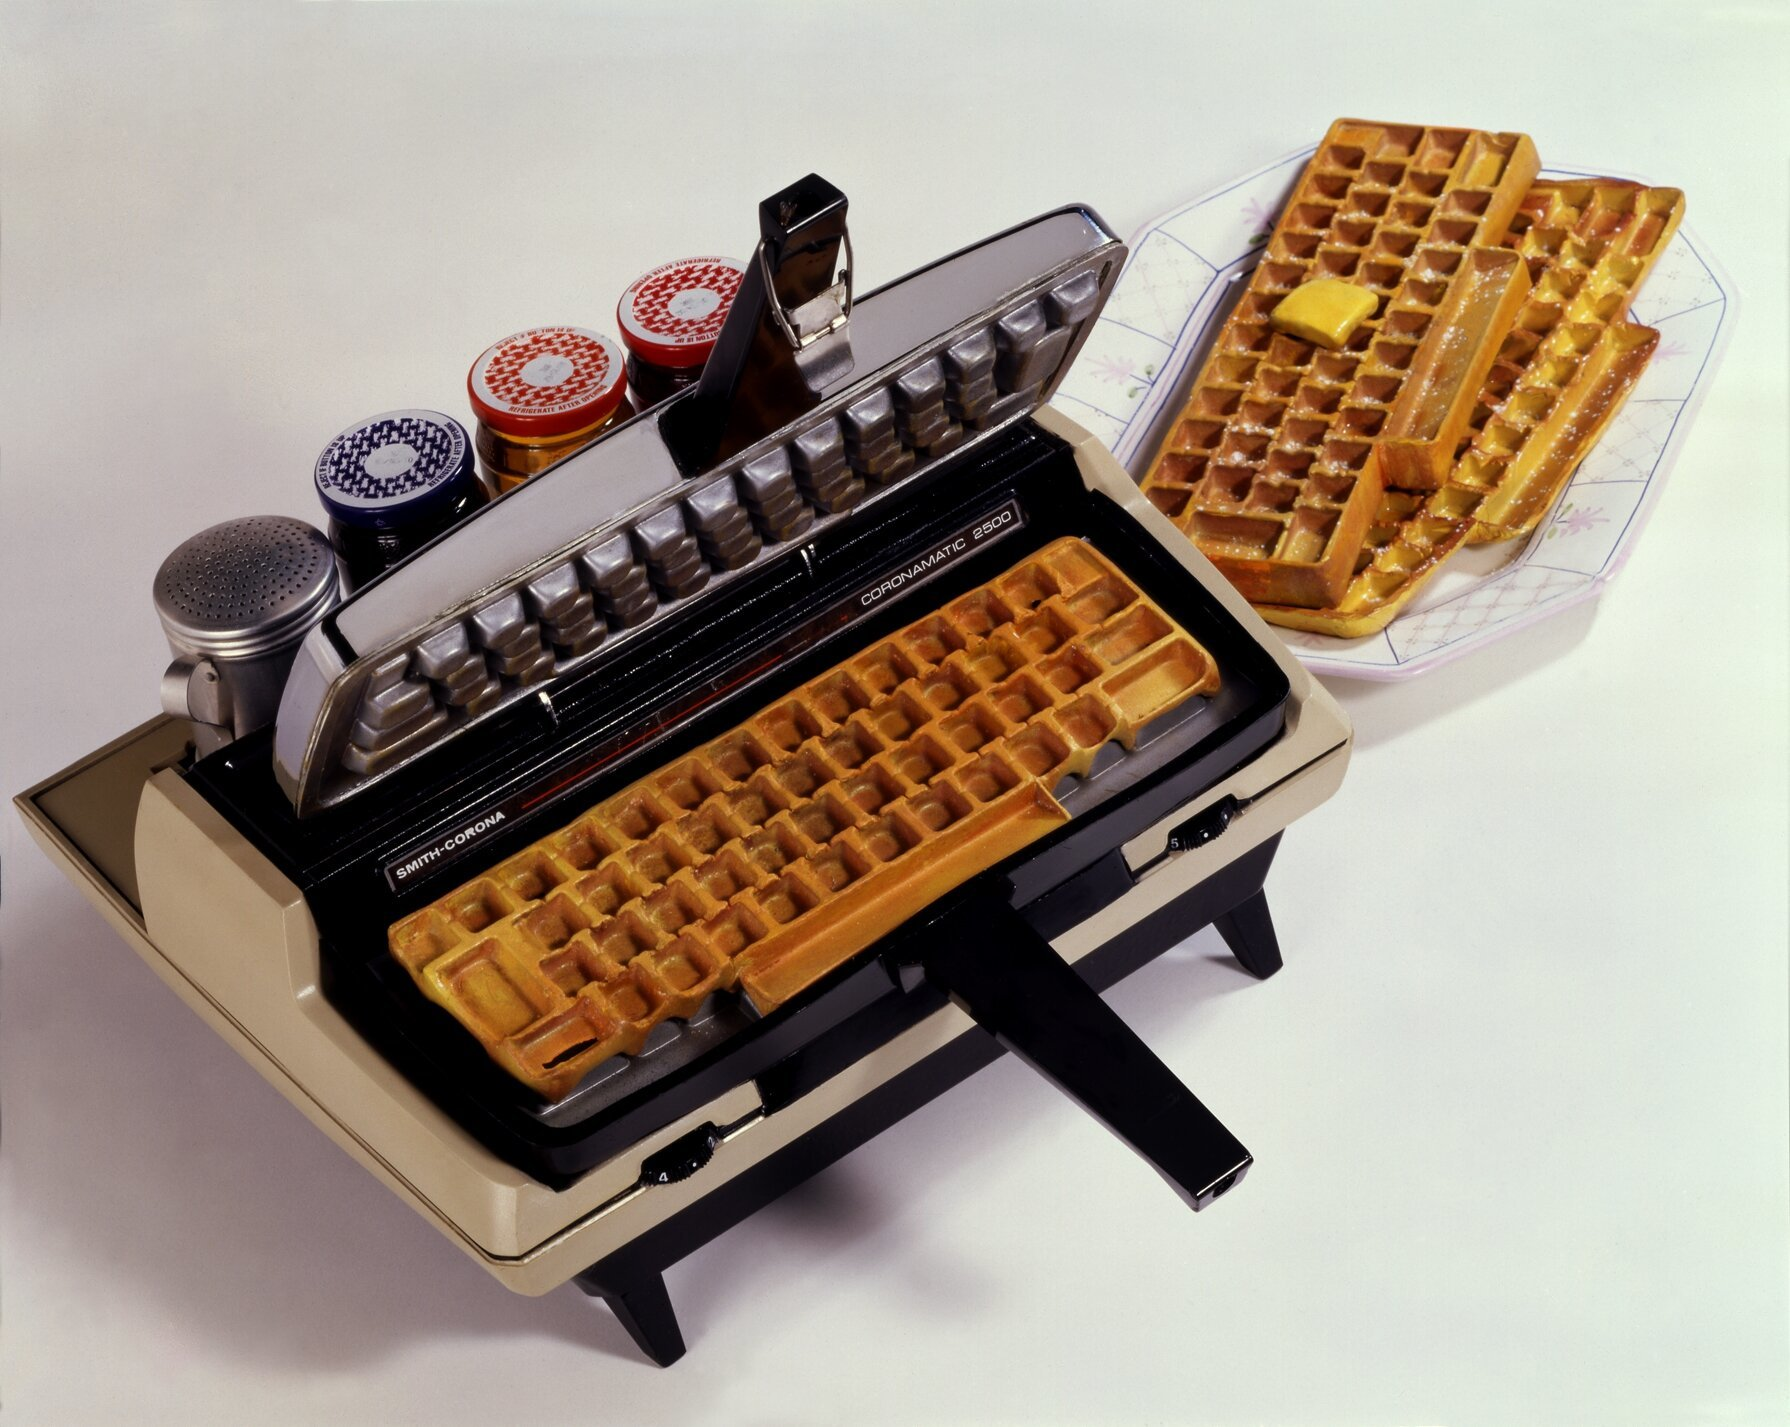 Your Weird Dreams Of Eating A Waffle Keyboard Have Finally Come True